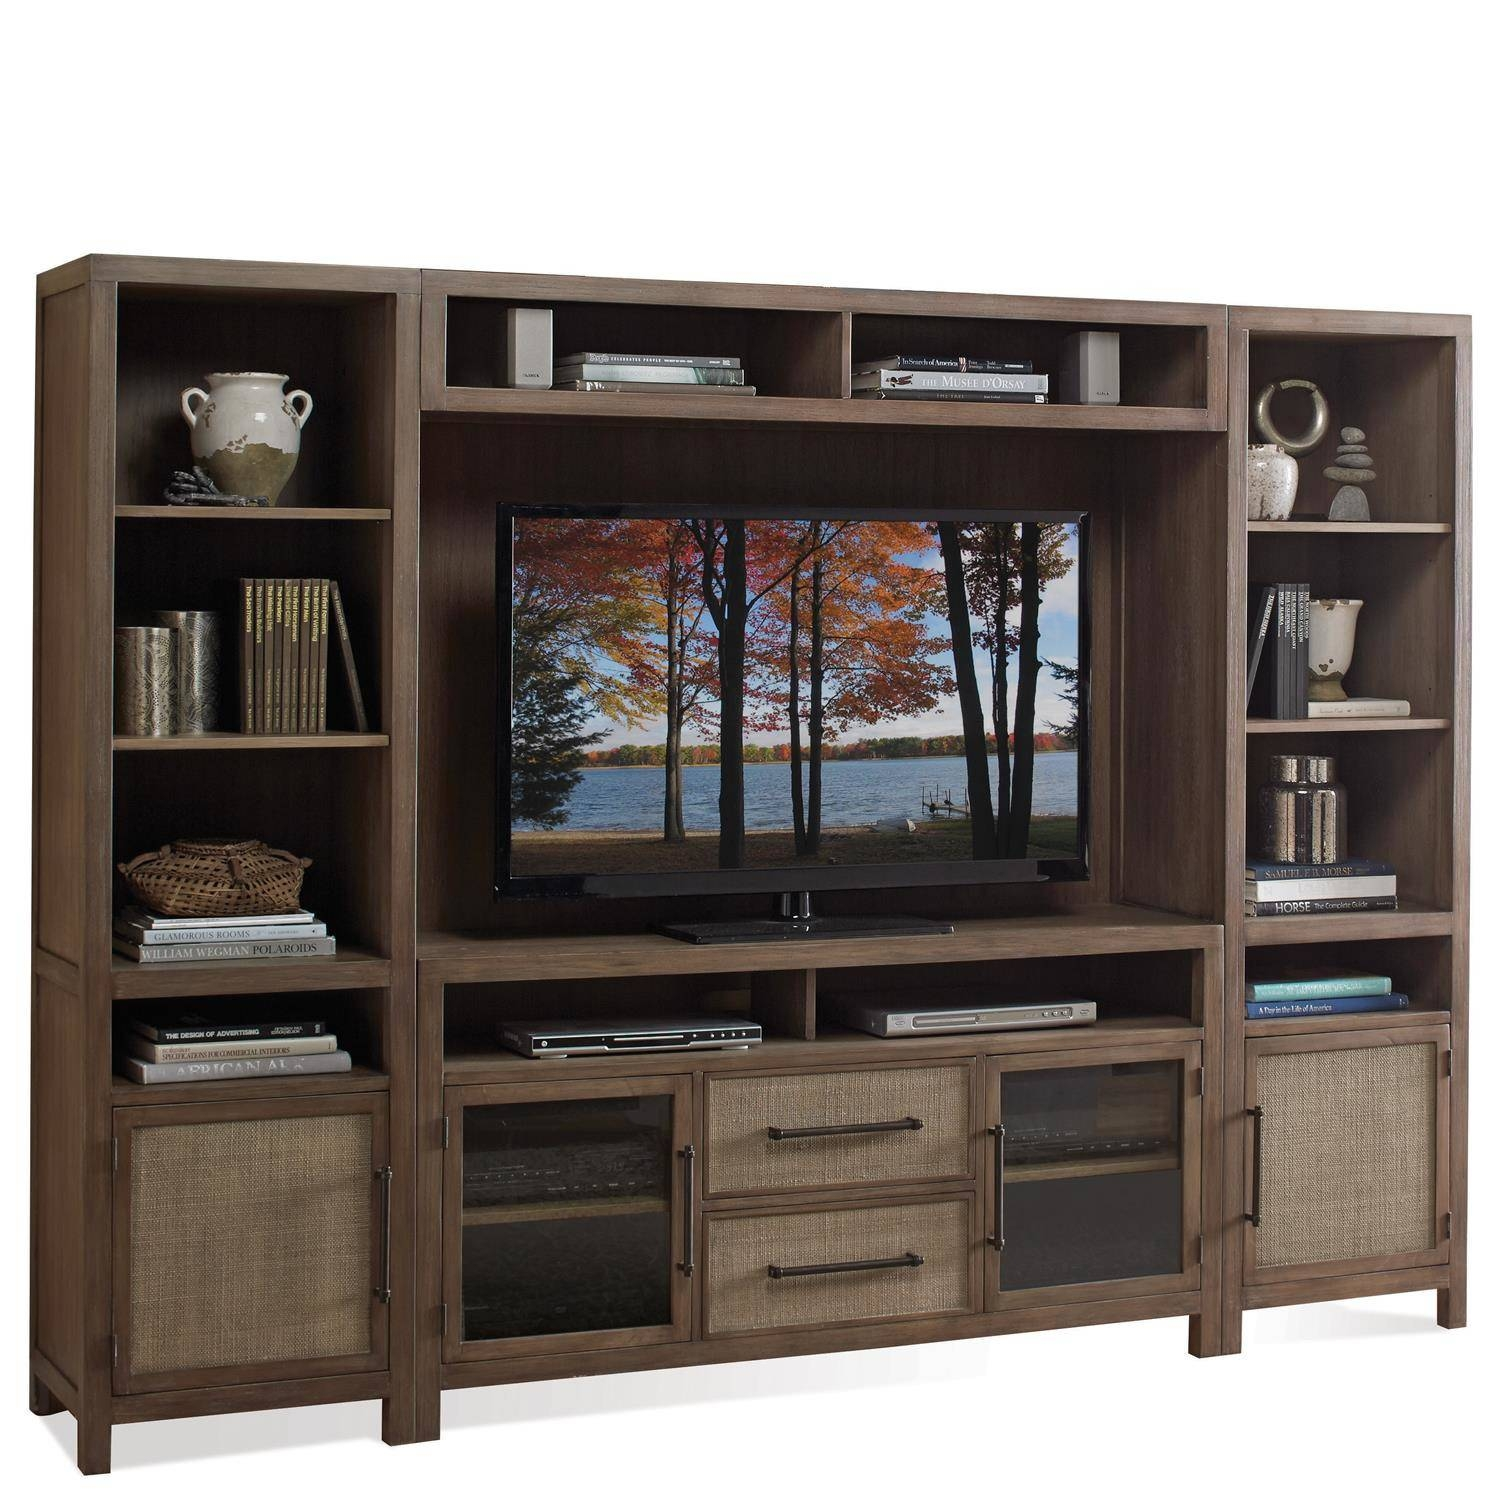 Sideboards. Amazing Joss And Main Tv Stands: Joss-And-Main-Tv within Tv Sideboards (Image 25 of 30)